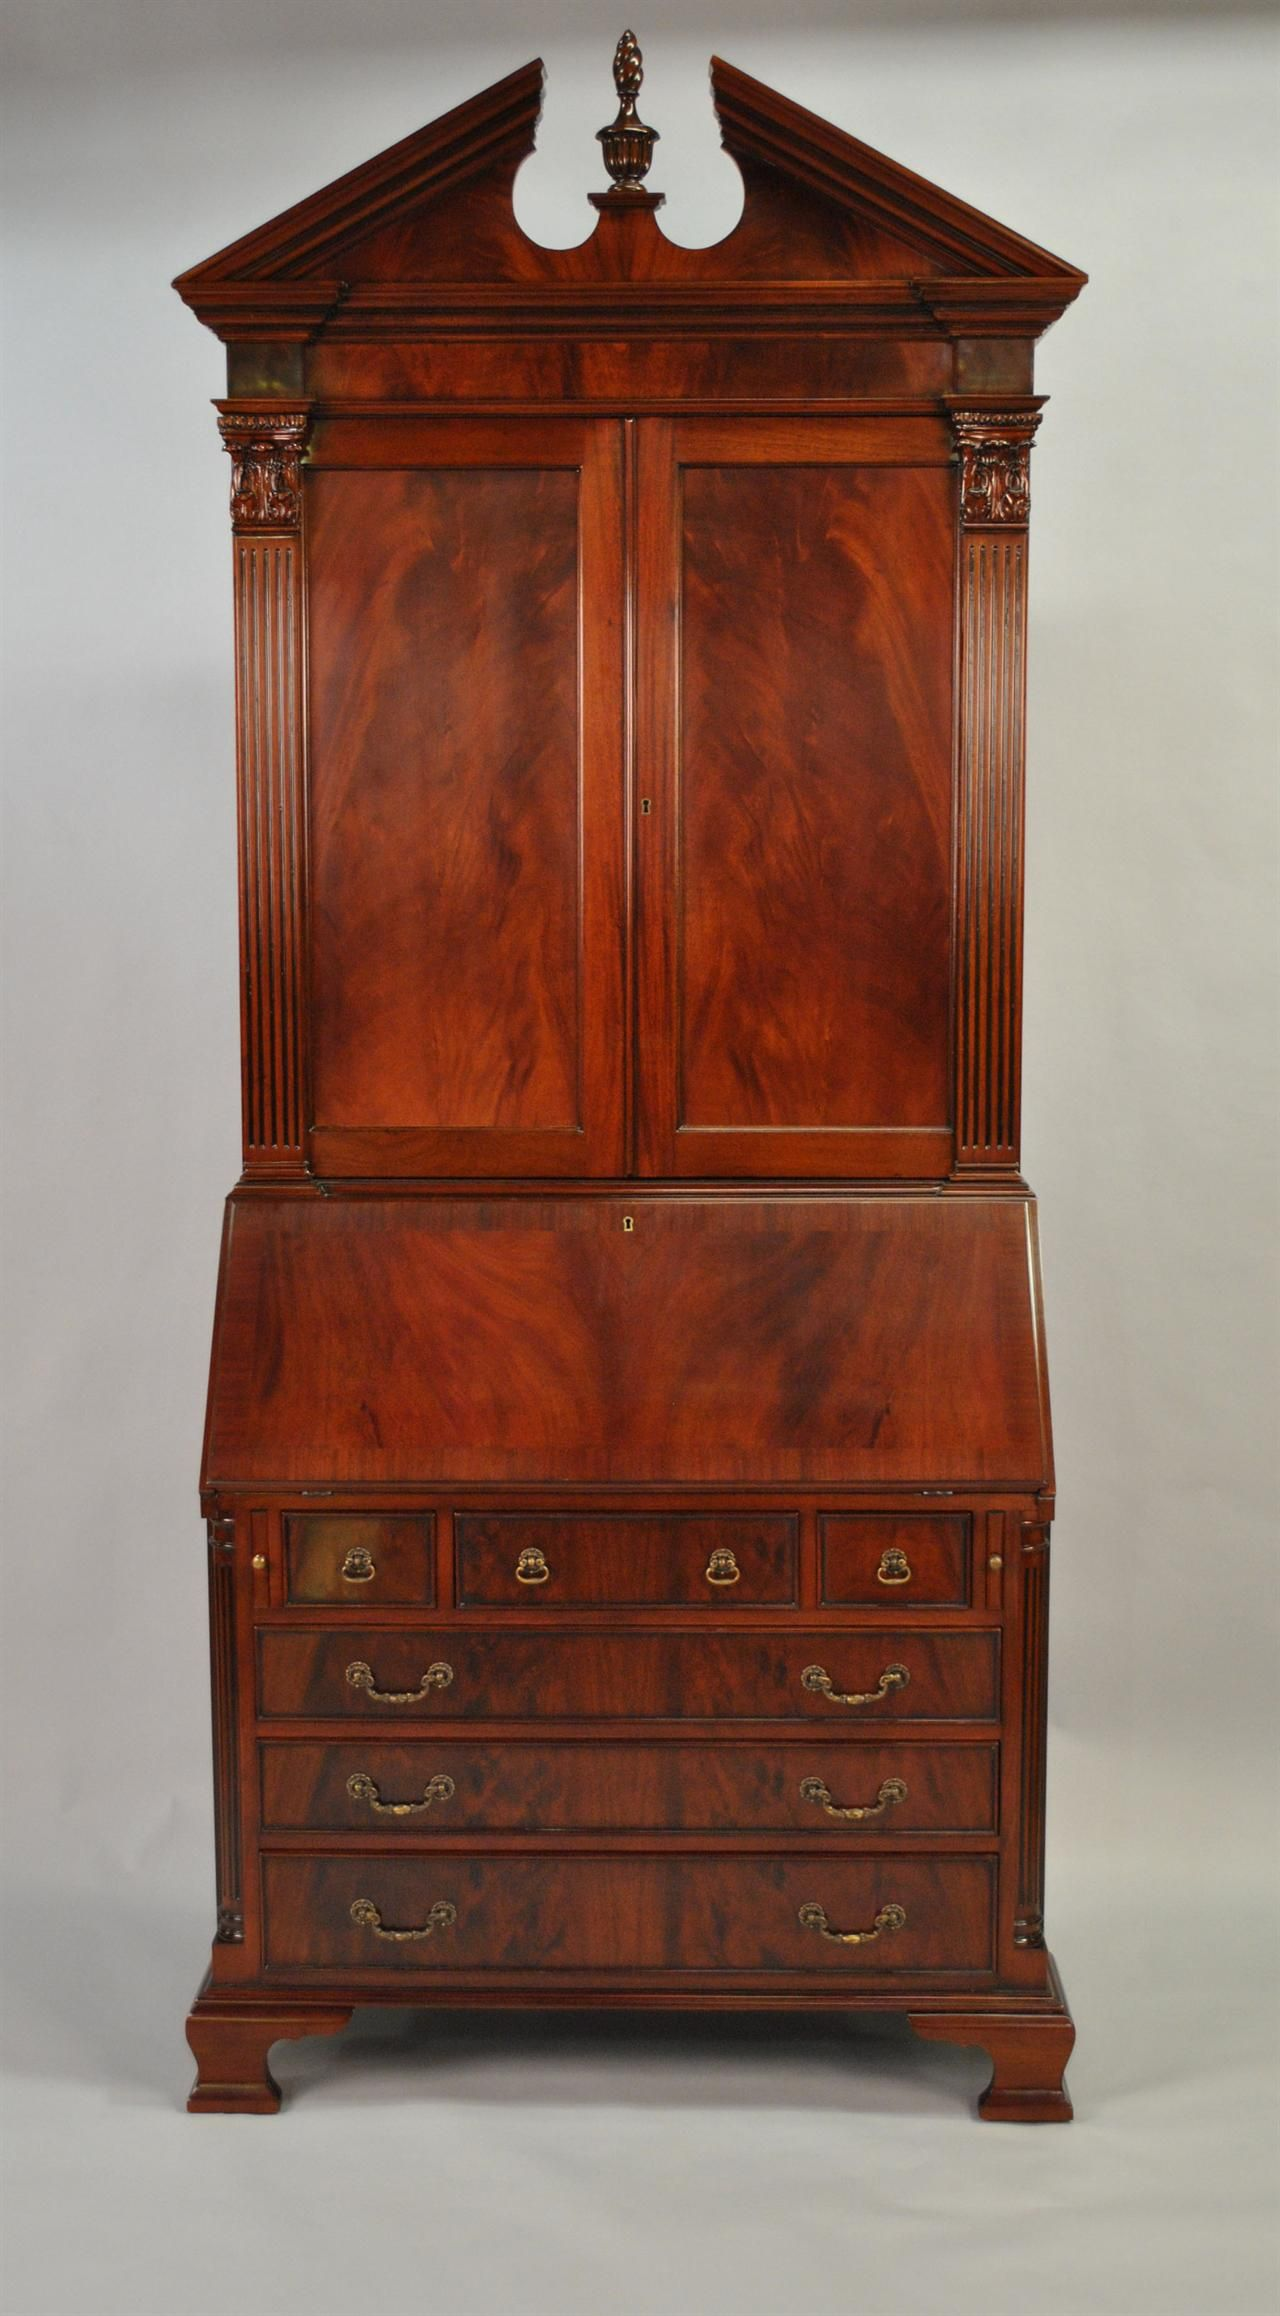 antique Colonial mahogany secretary desk, now THIS is furniture! - Antique Secretary Desk Colonial Secretary Desk, Mahogany